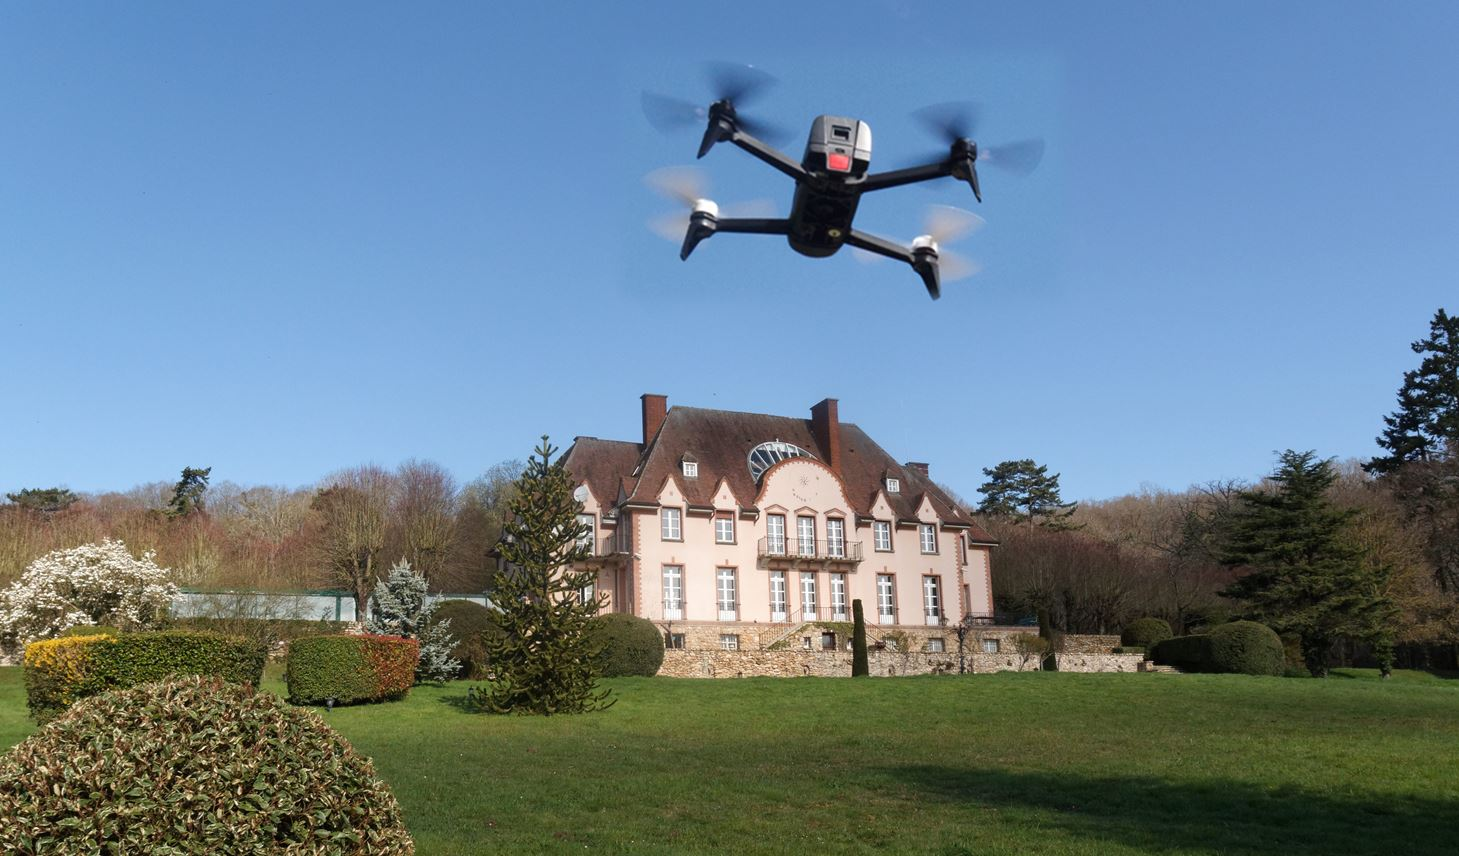 Property mapping via drones to boost transparency: Experts